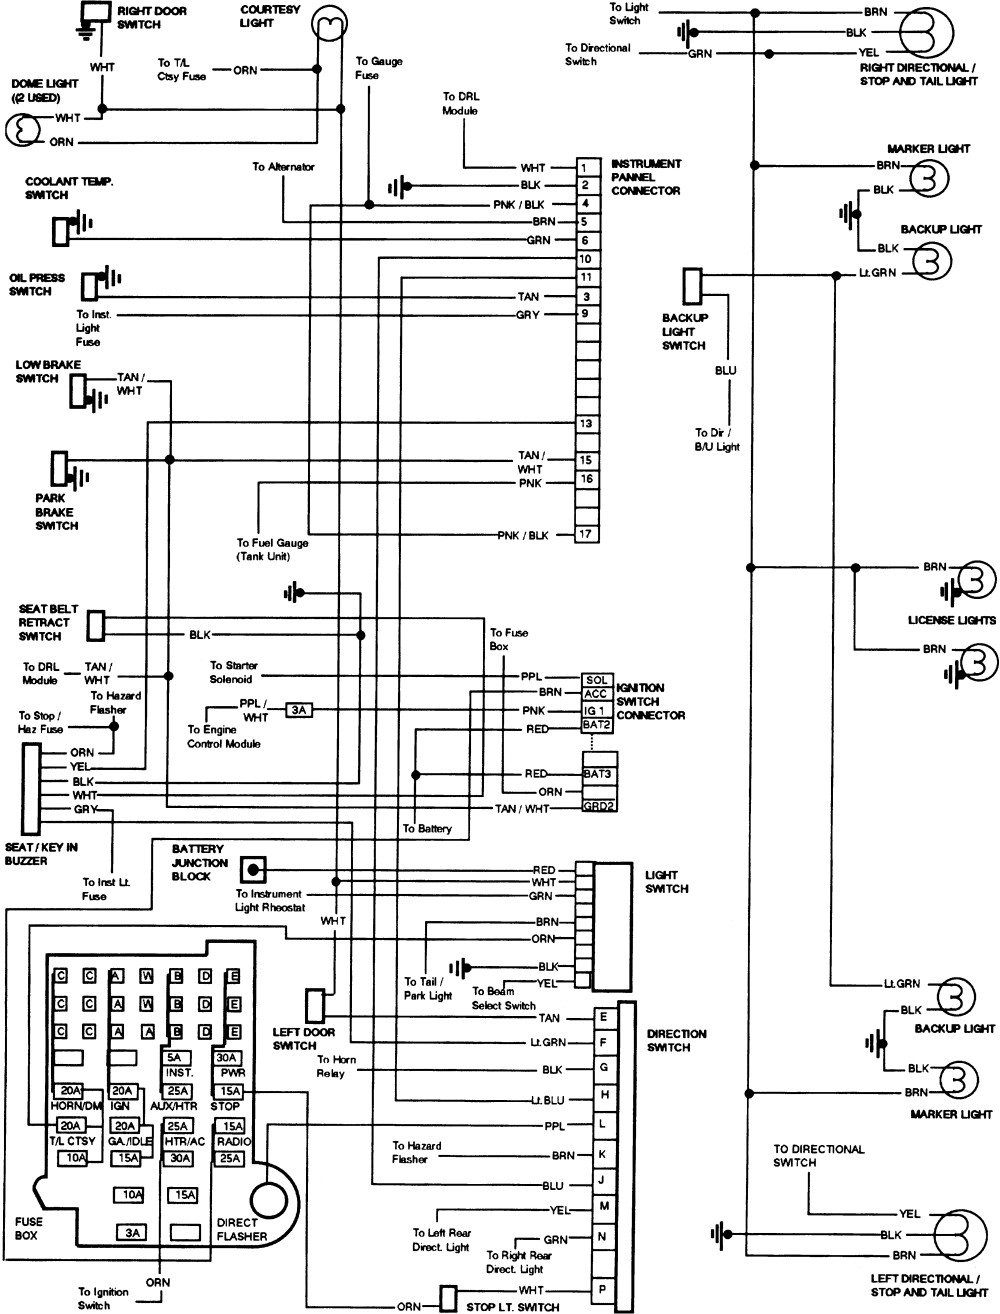 medium resolution of 1985 gmc wiring diagram free wiring diagram for you u2022 1985 ford truck wiring diagram 1985 gmc wiring diagram